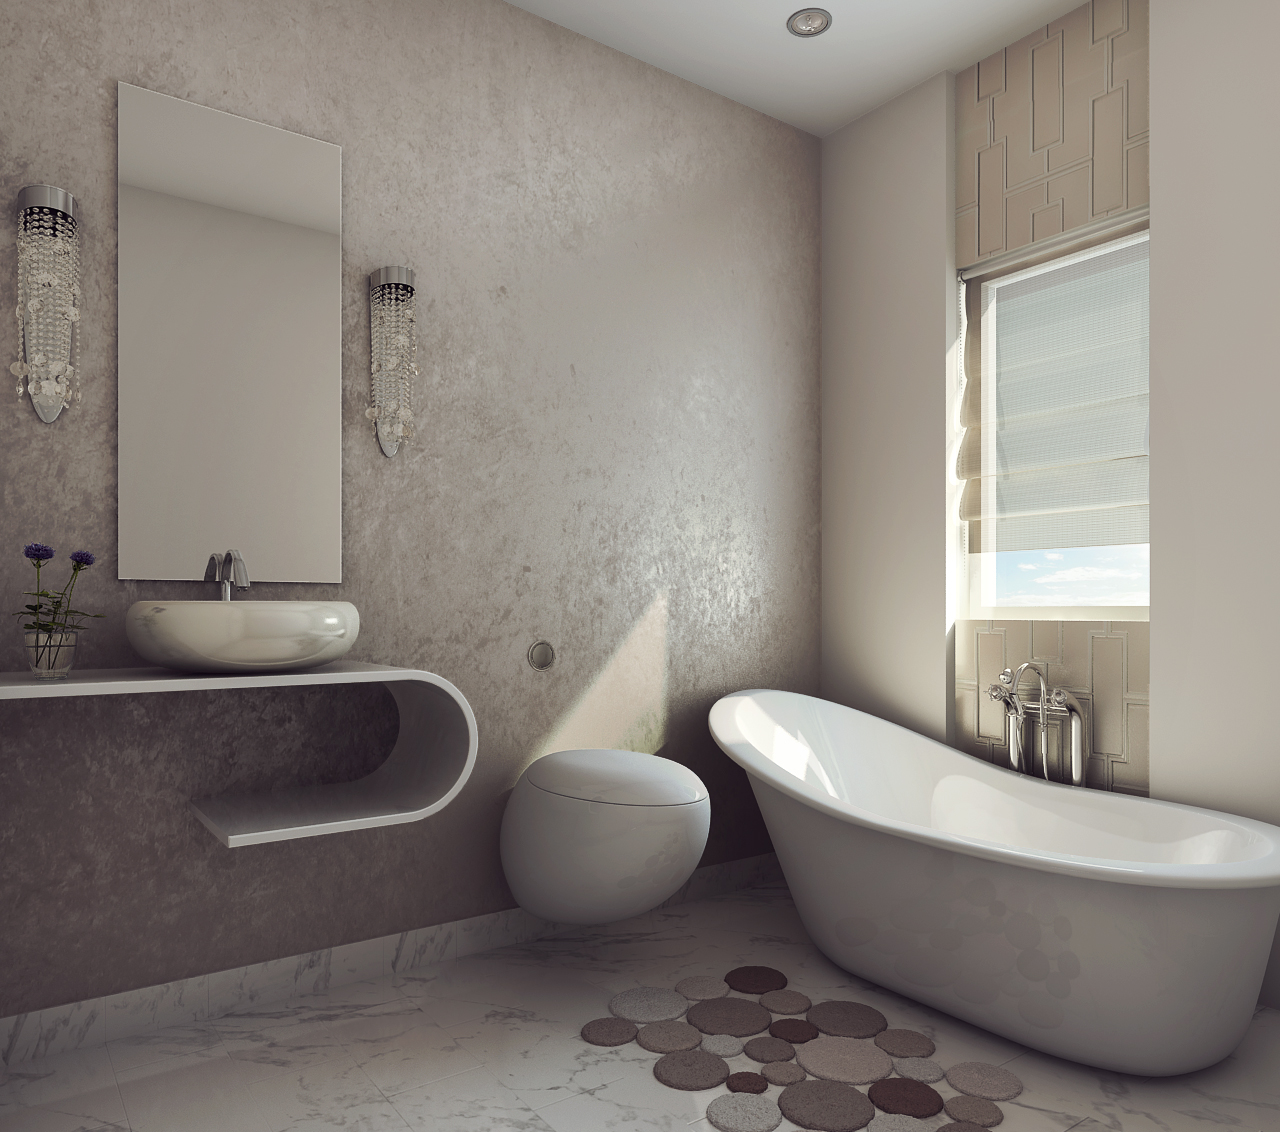 Modern earthy design bath room free 3d model max for Bathroom designs 3d